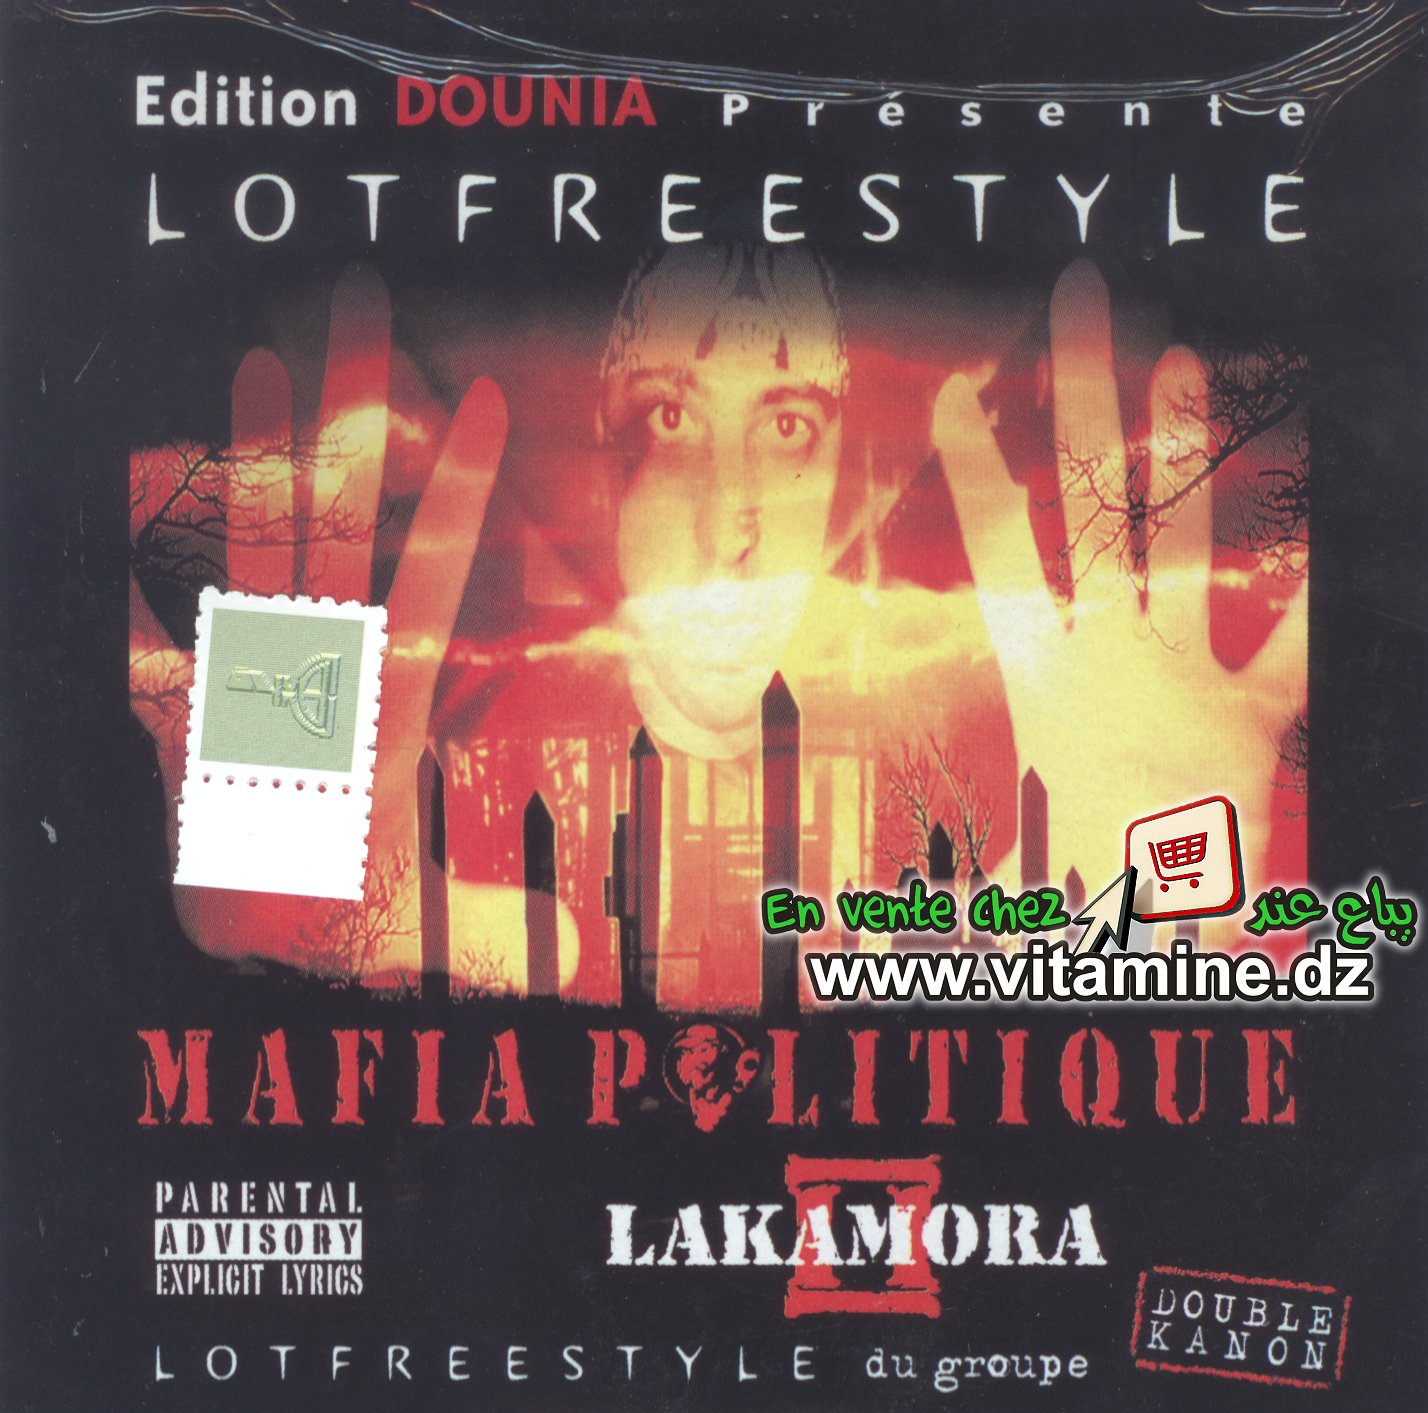 Double Kanon - mafiapolitique